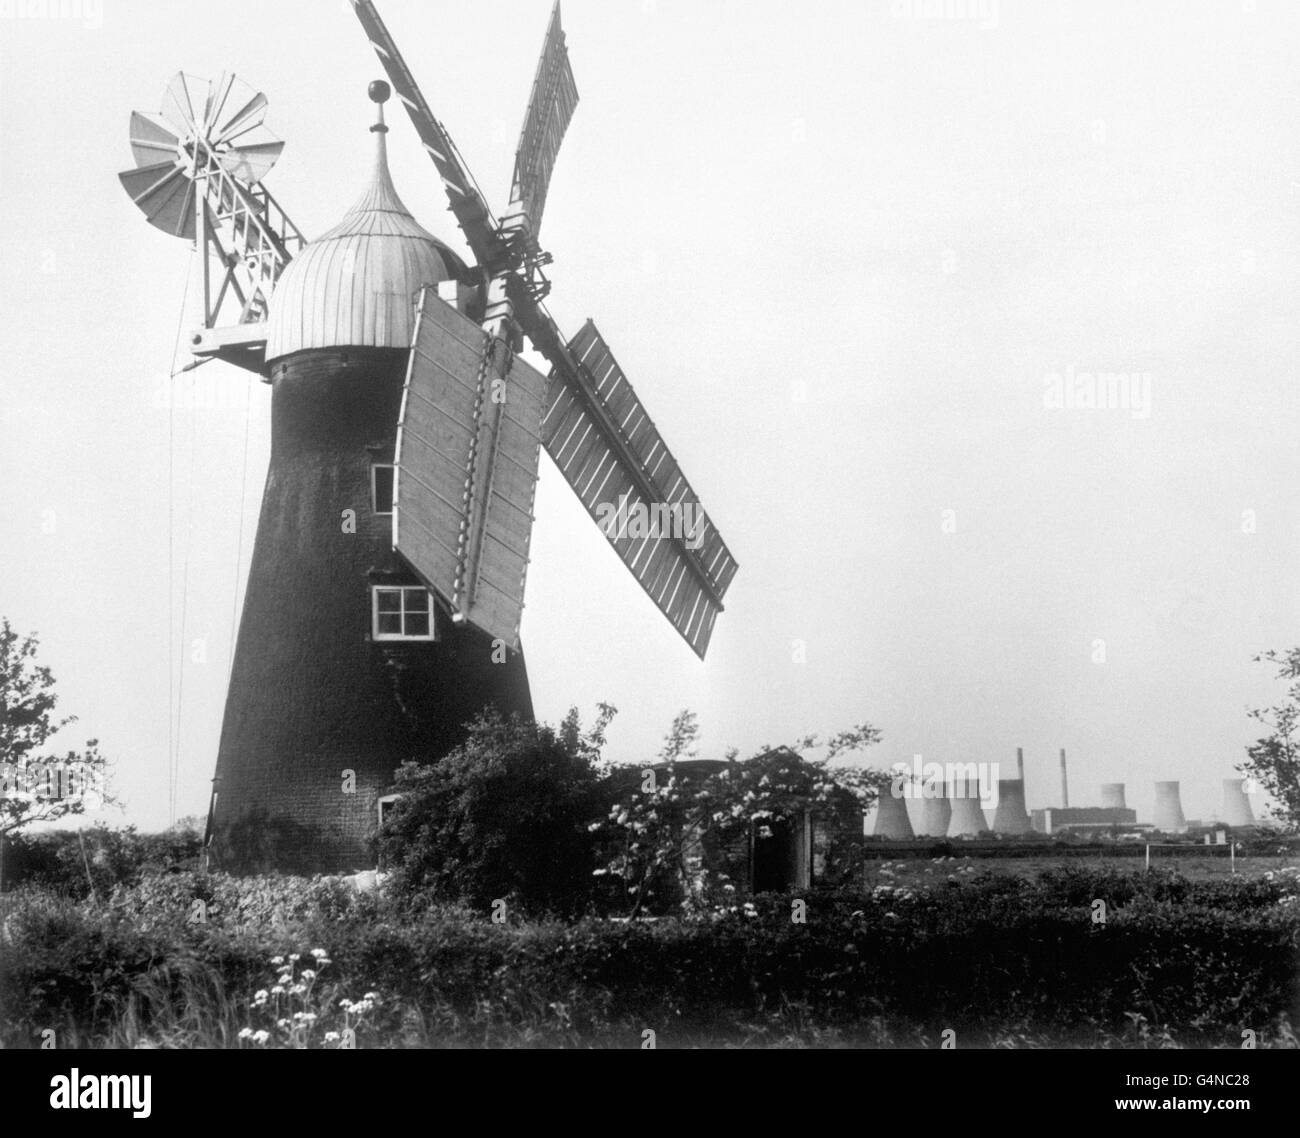 Buildings and Landmarks - Windmills - North Leverton Stock Photo